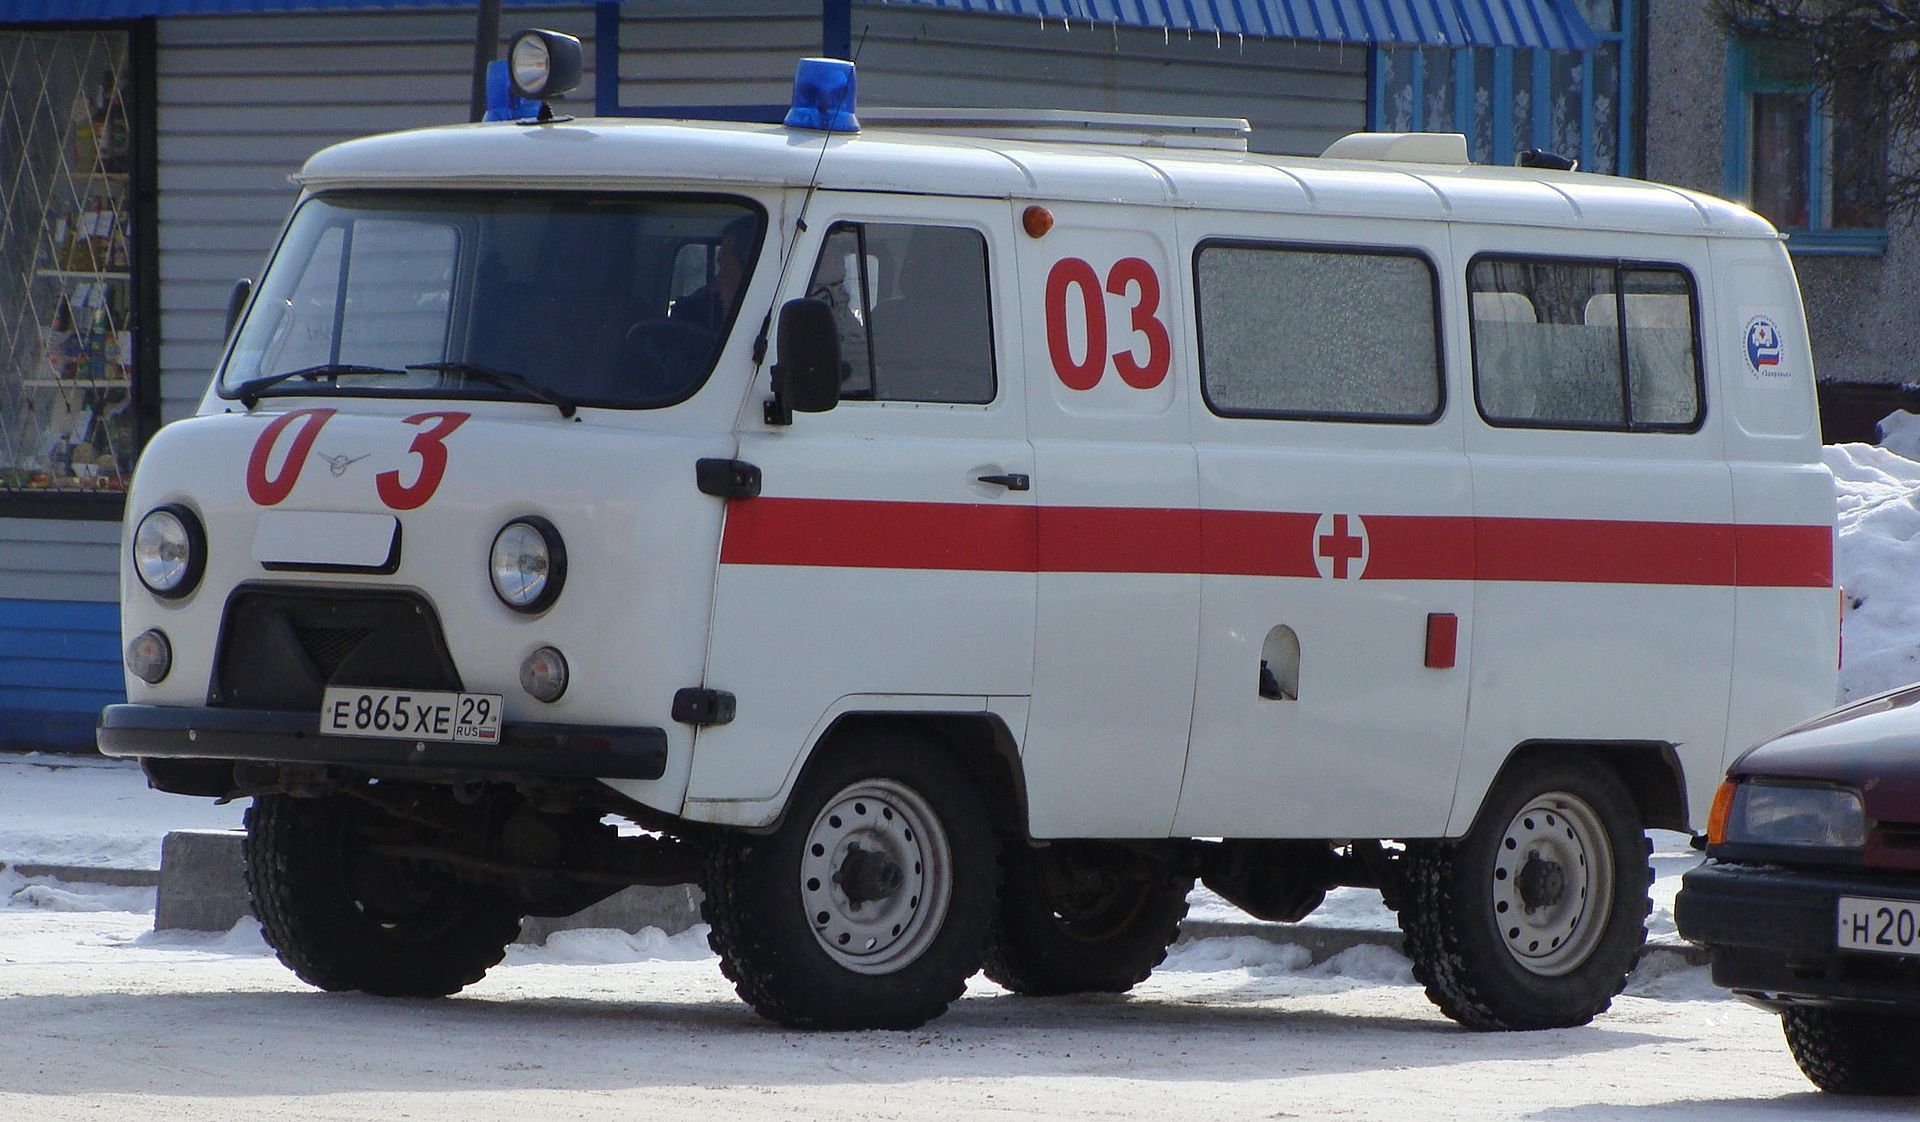 filete Mismo Extra  UAZ 452, Ambulances, Koryazhma - UAZ-452 - Wikipedia | Vehicles, Van,  Offroad vehicles